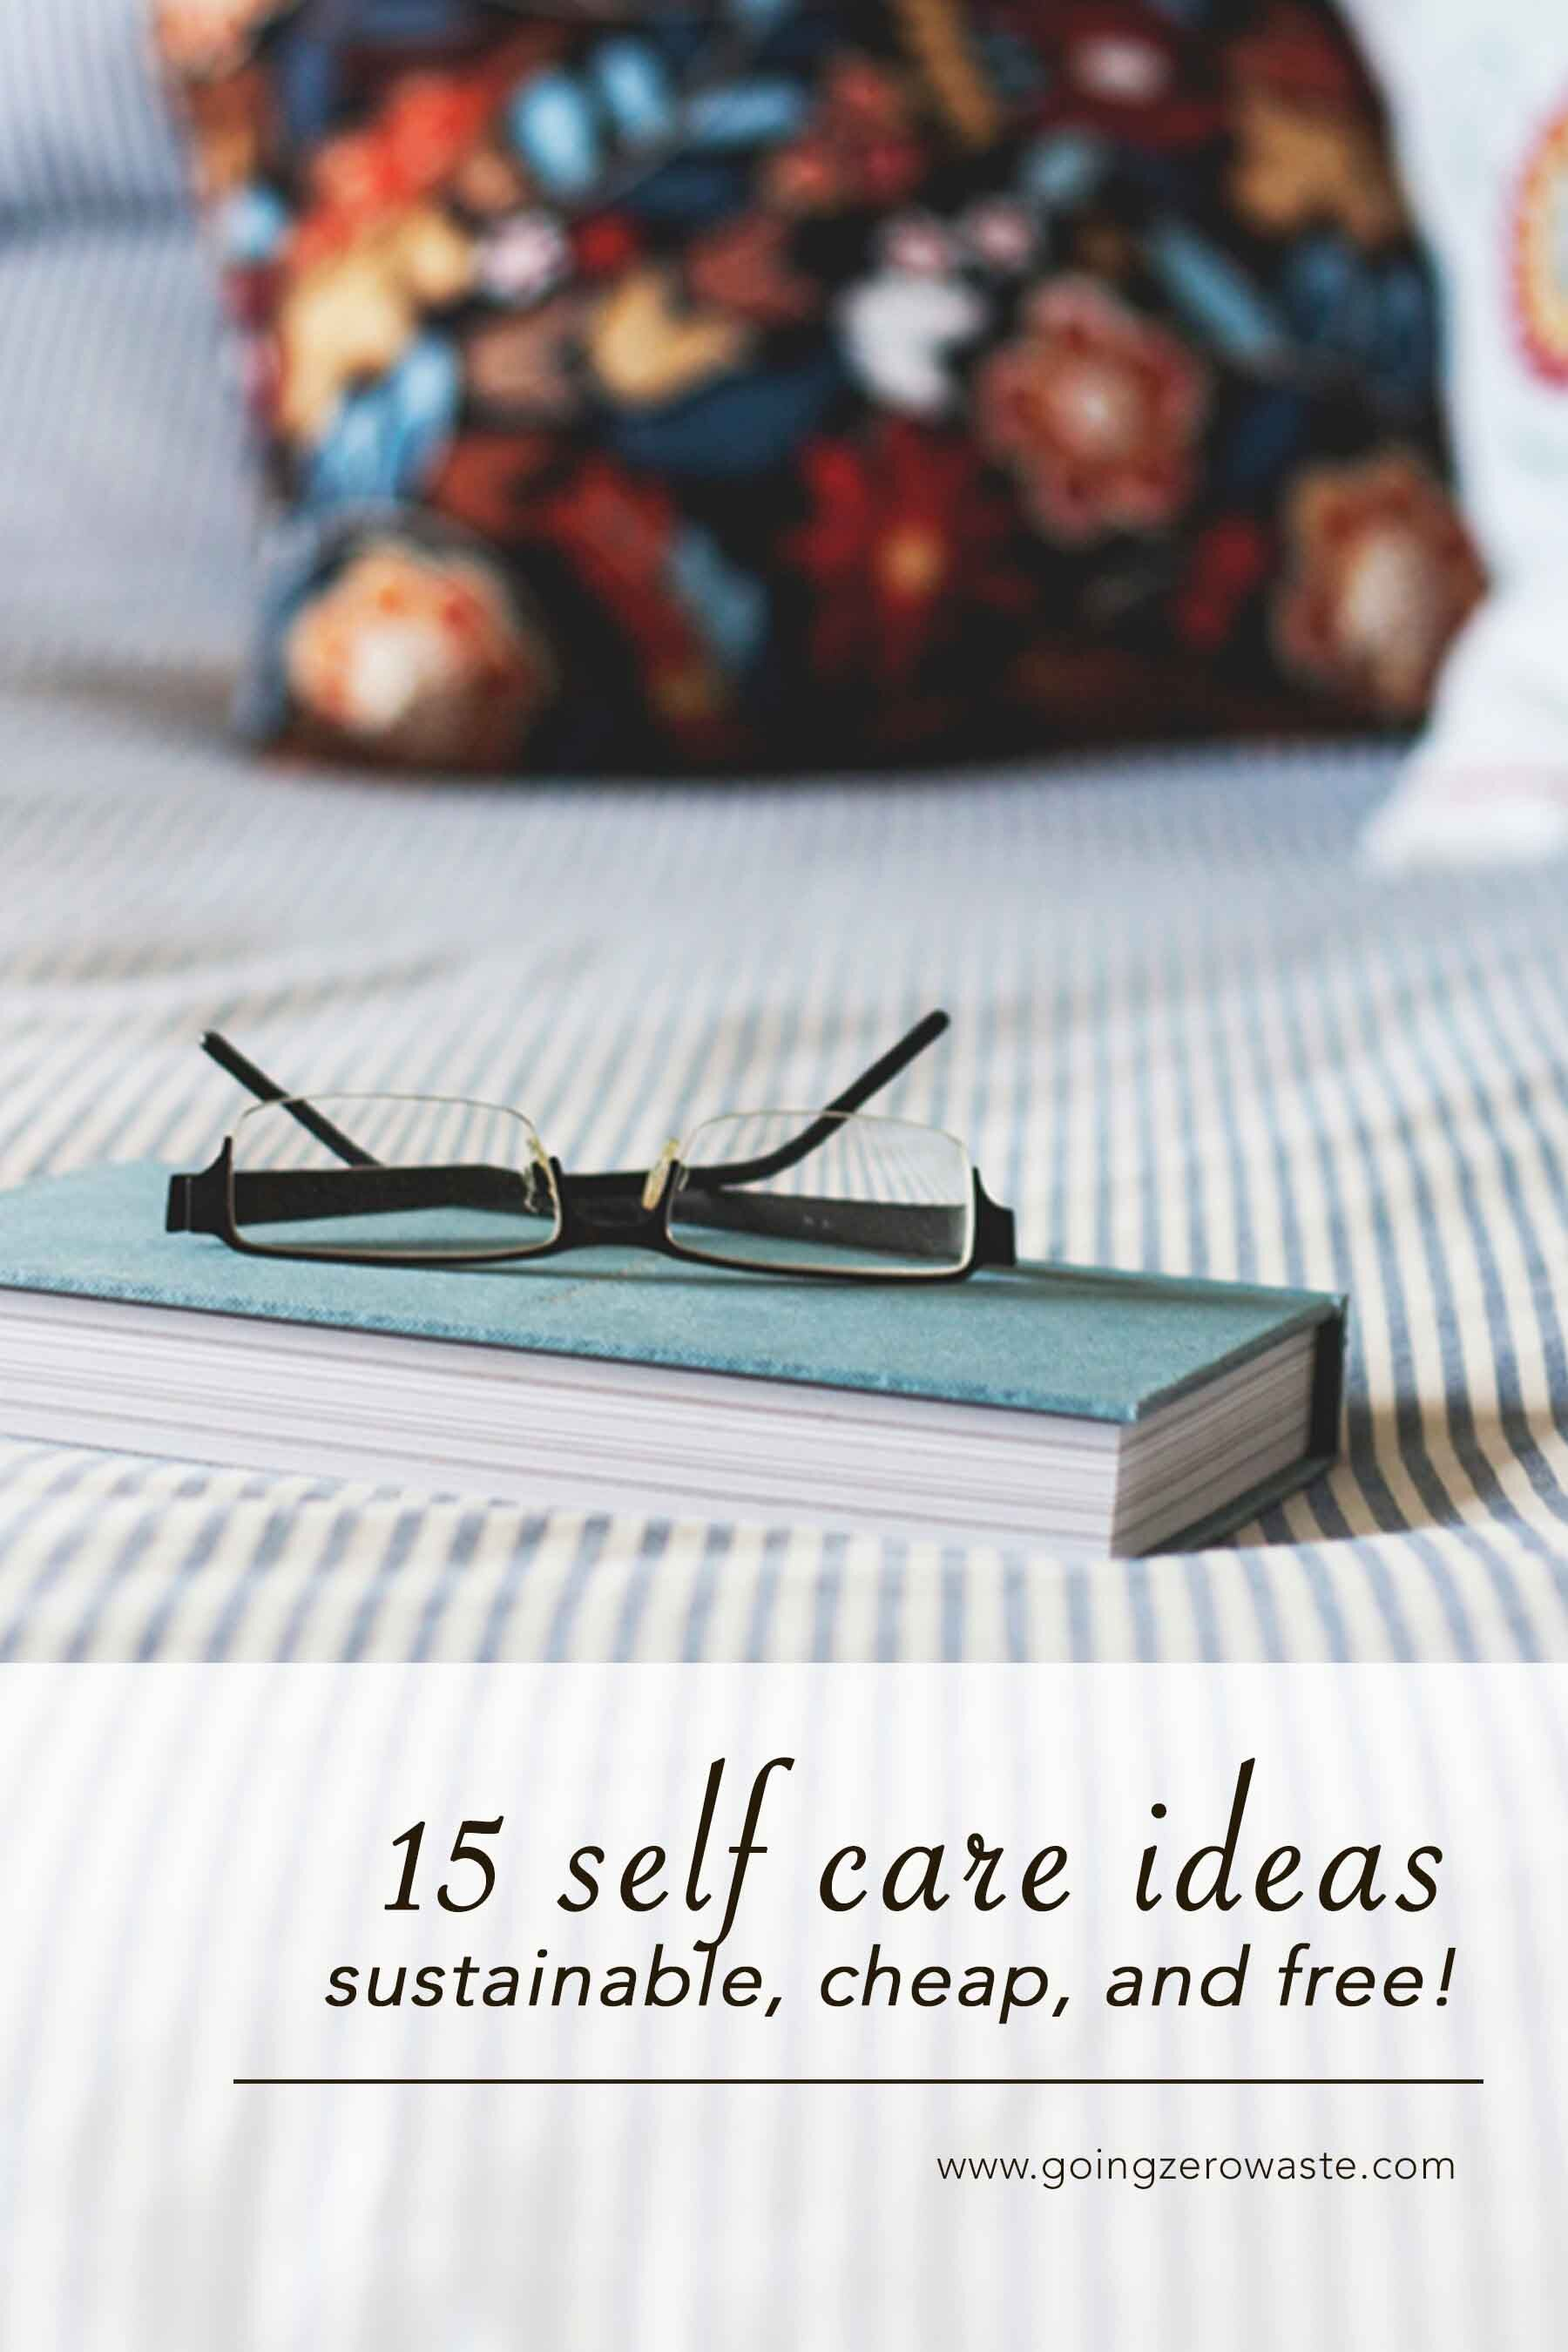 Sustainable and Cheap - 15 Self-Care Ideas from www.goingzerowaste.com #zerowaste #ecofriendly #gogreen #sustainable #selfcare